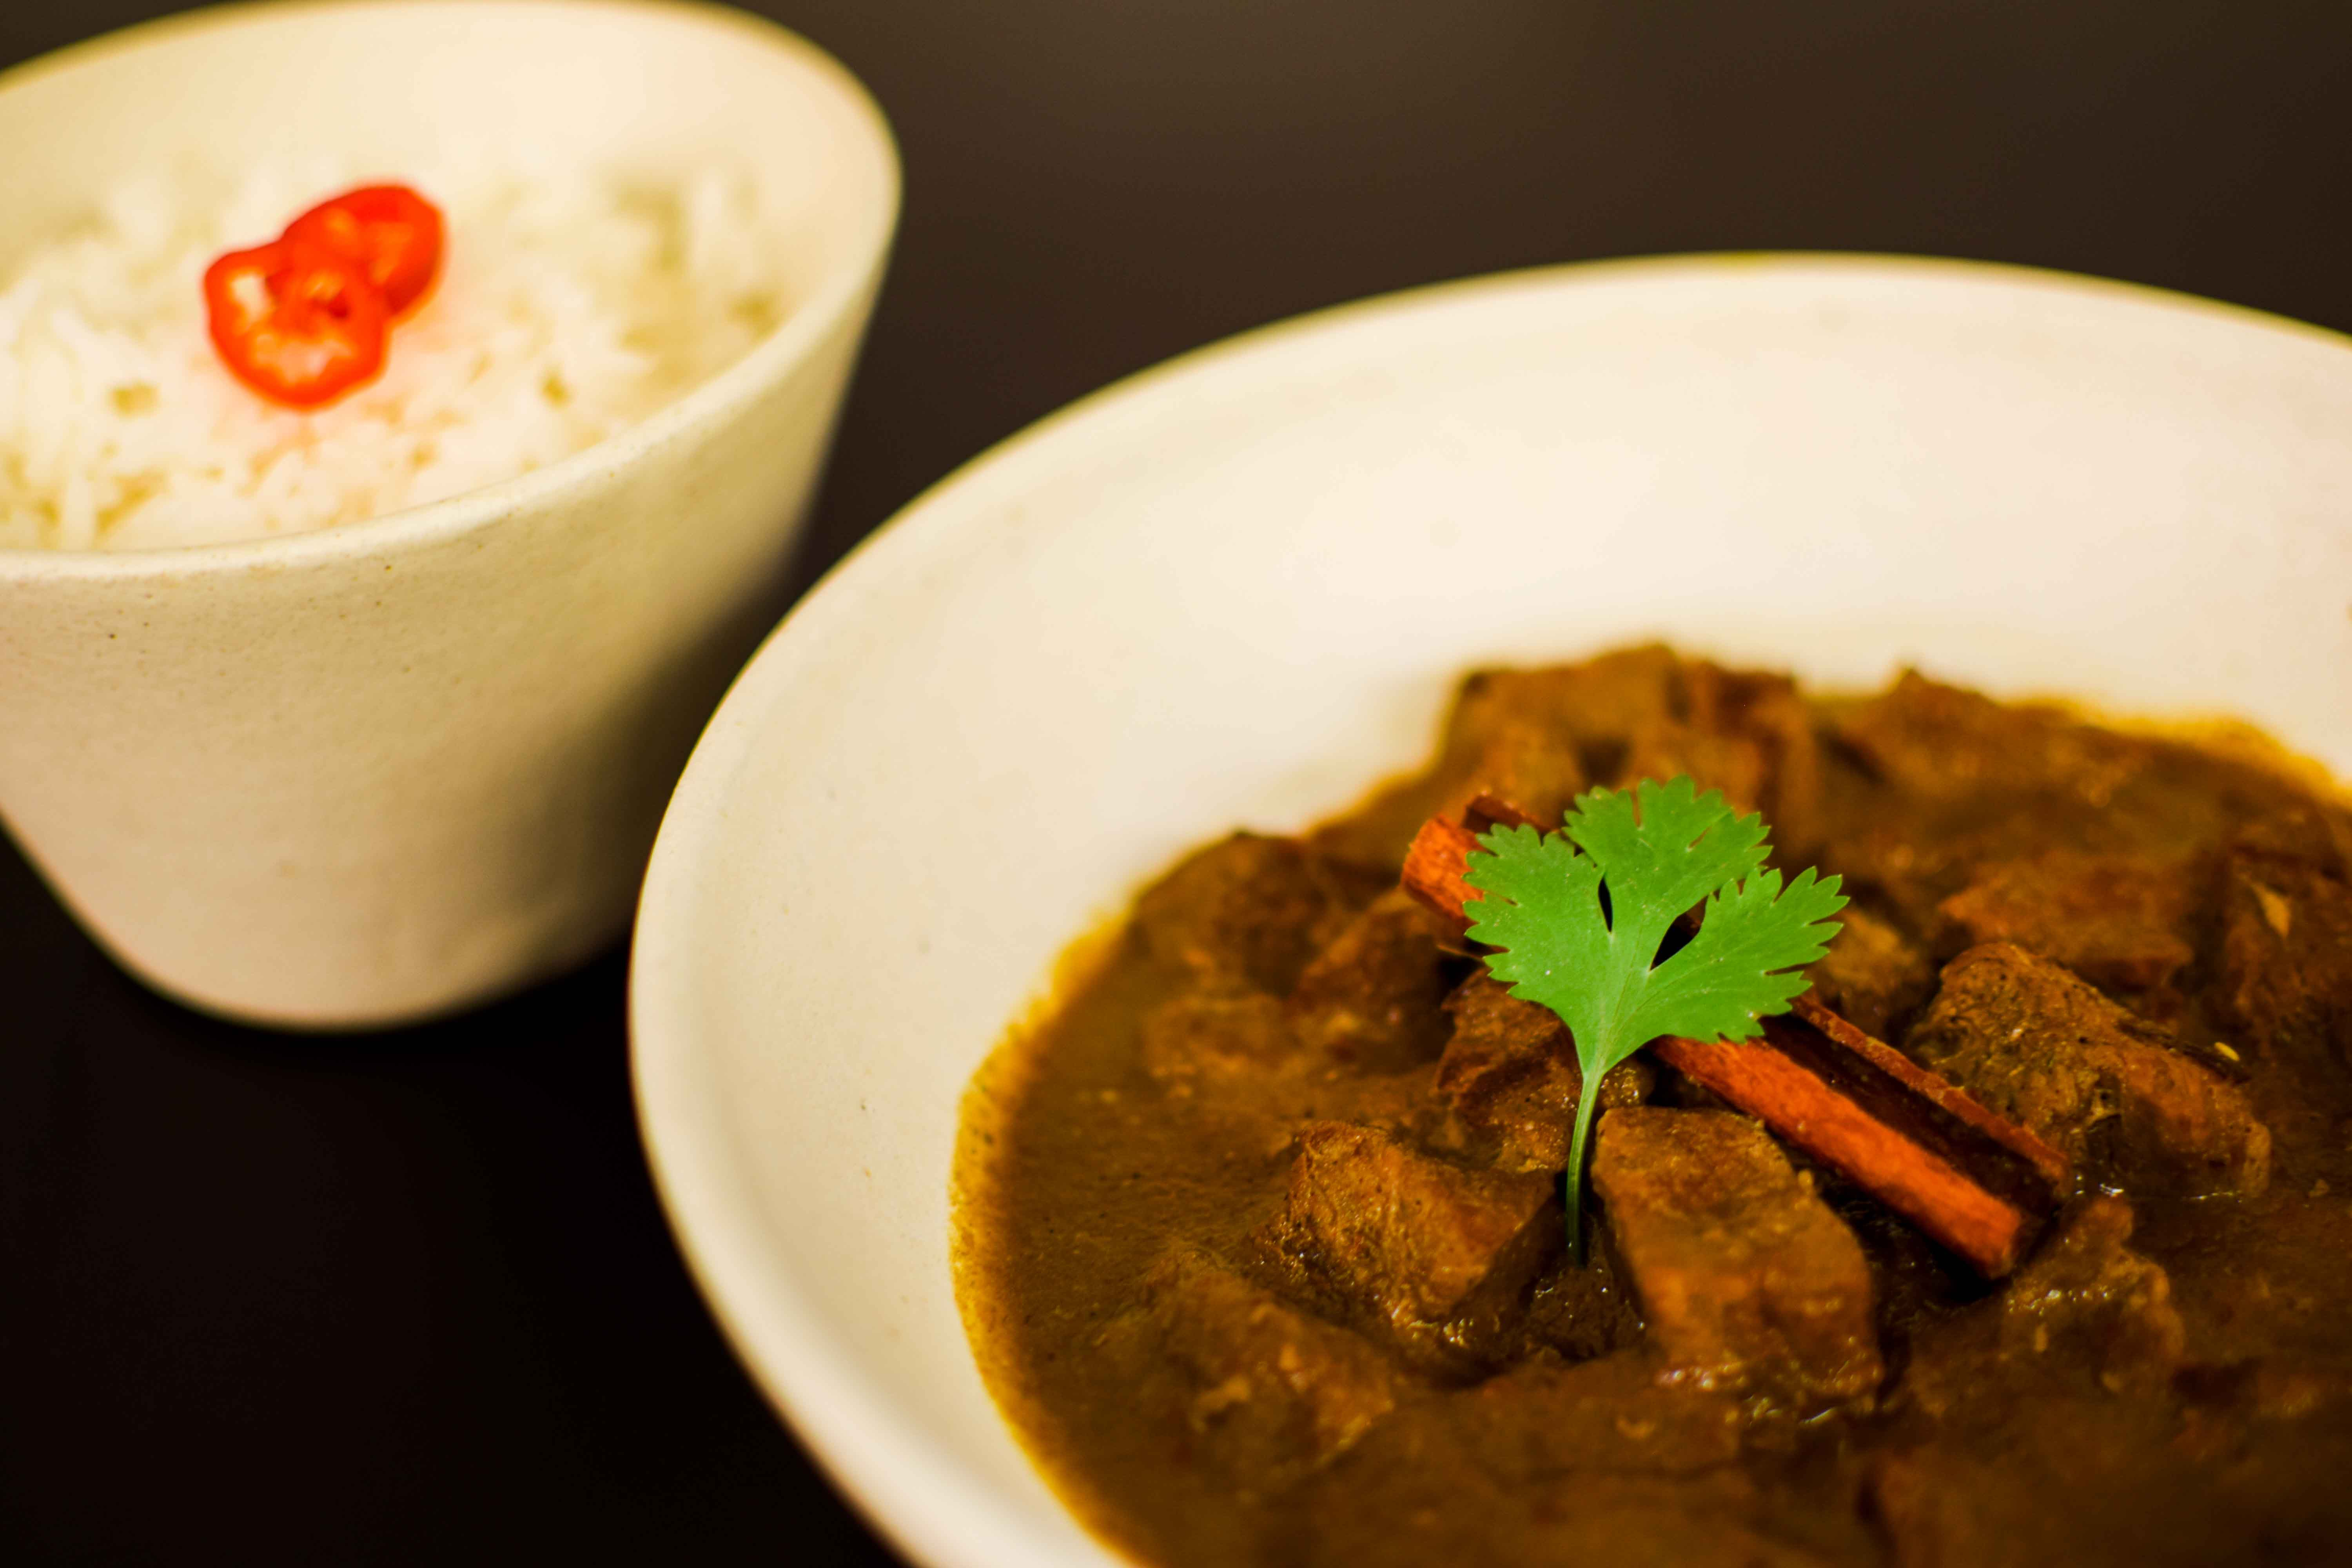 Rendang curry com arroz basmati